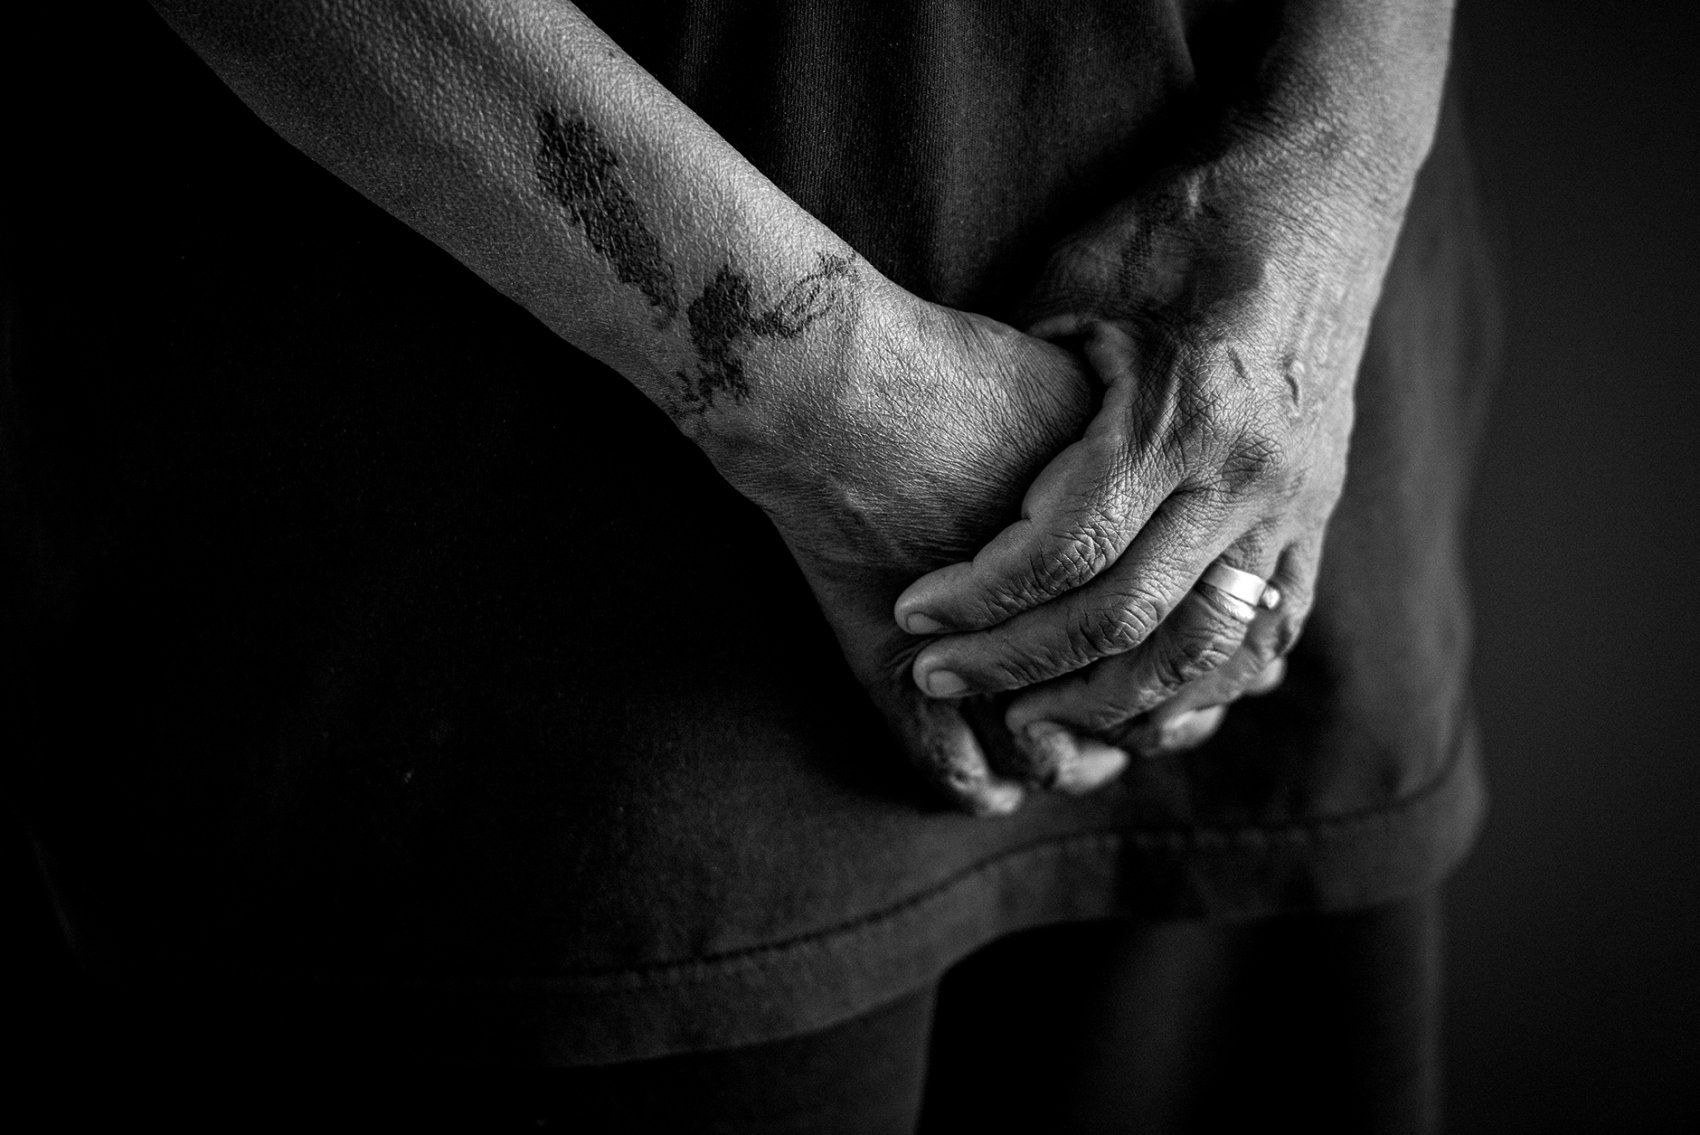 close-up of person's crossed hands